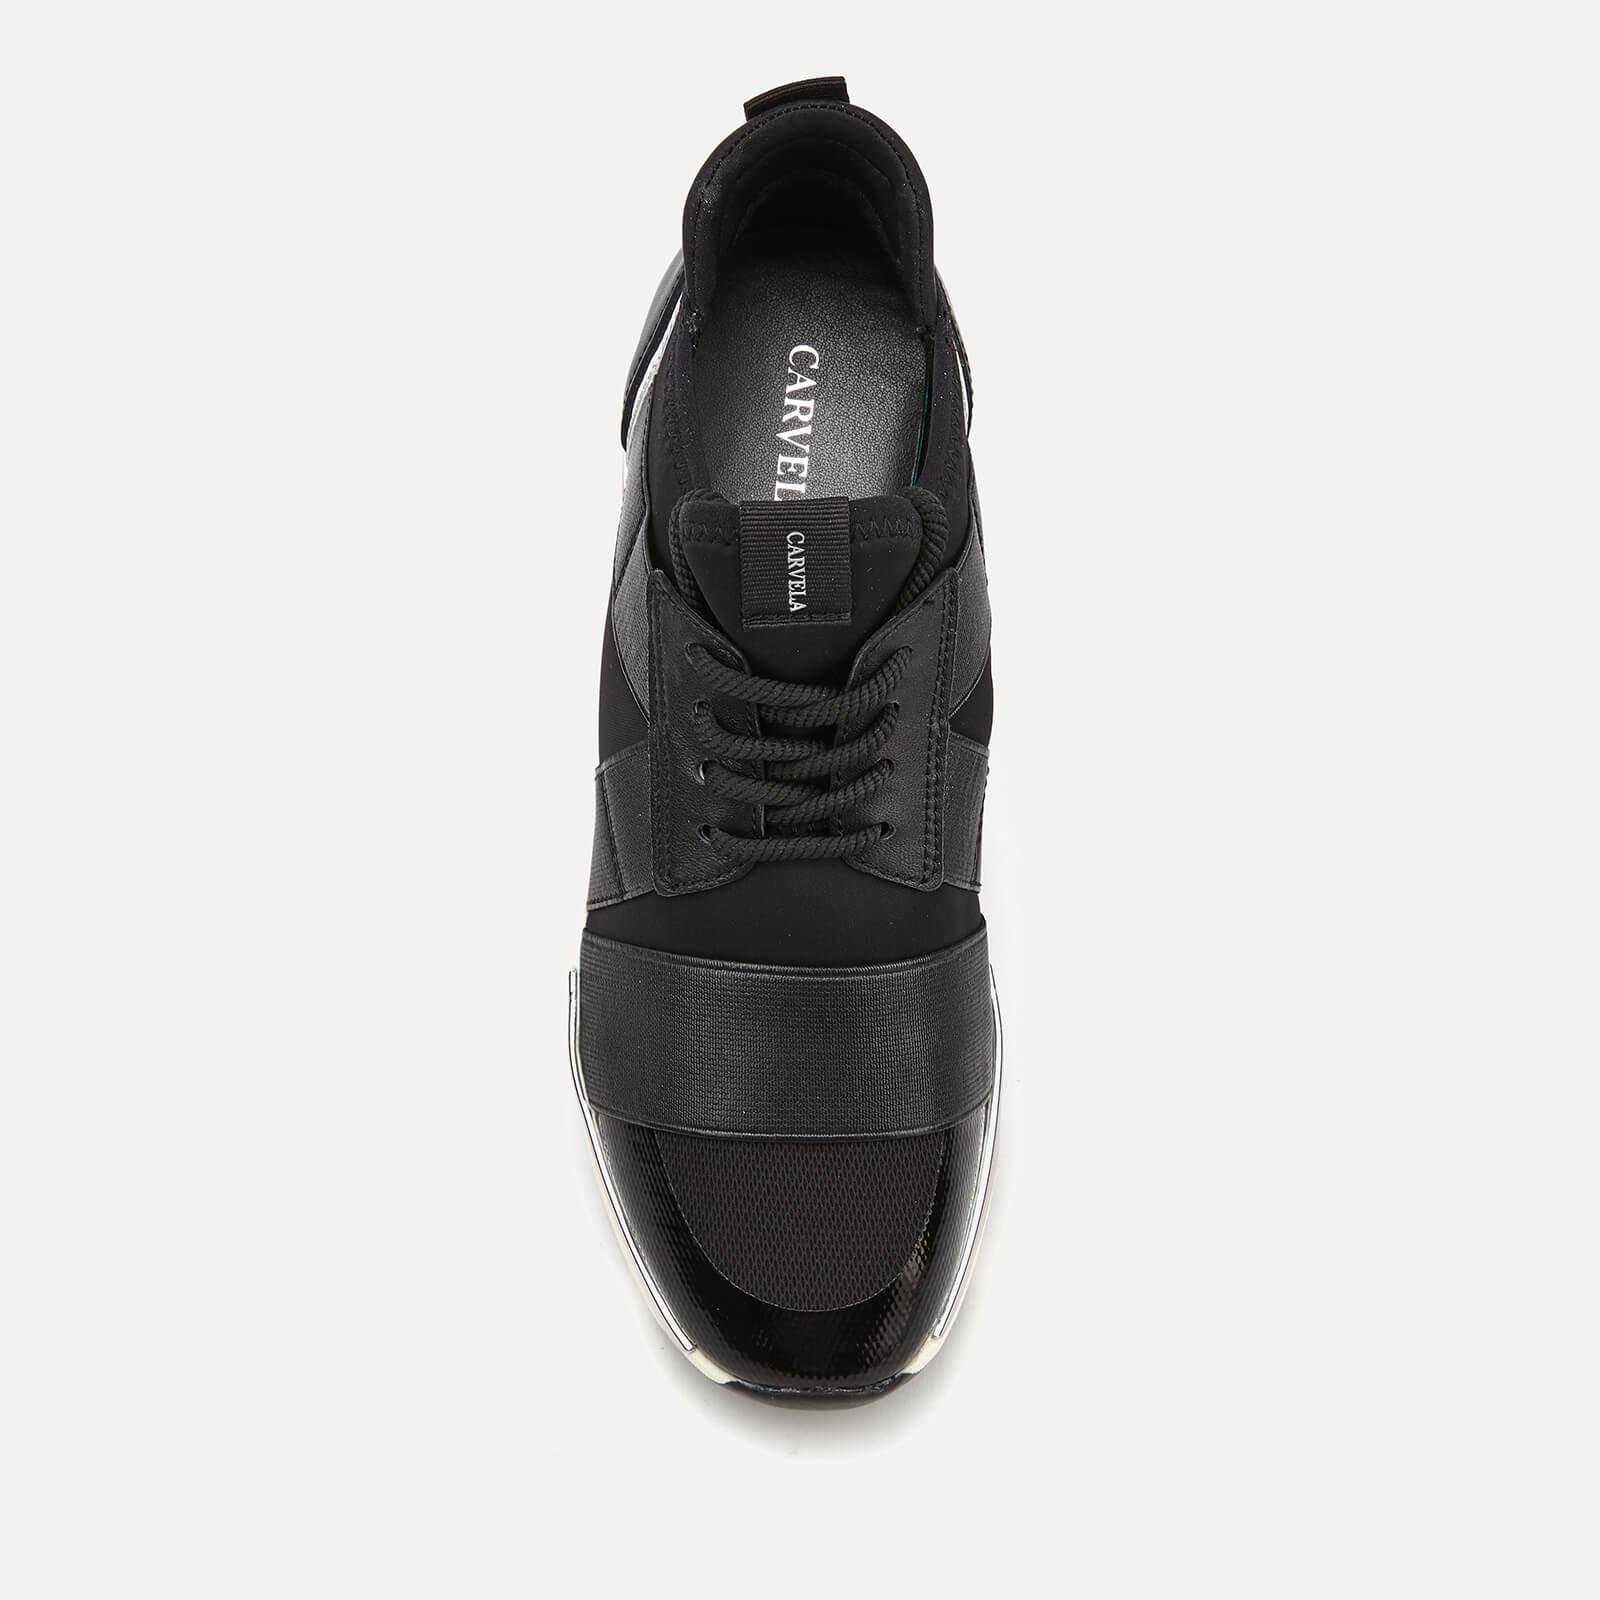 089285a7dcc Carvela Kurt Geiger - Black Lauryn Runner Style Trainers - Lyst. View  fullscreen